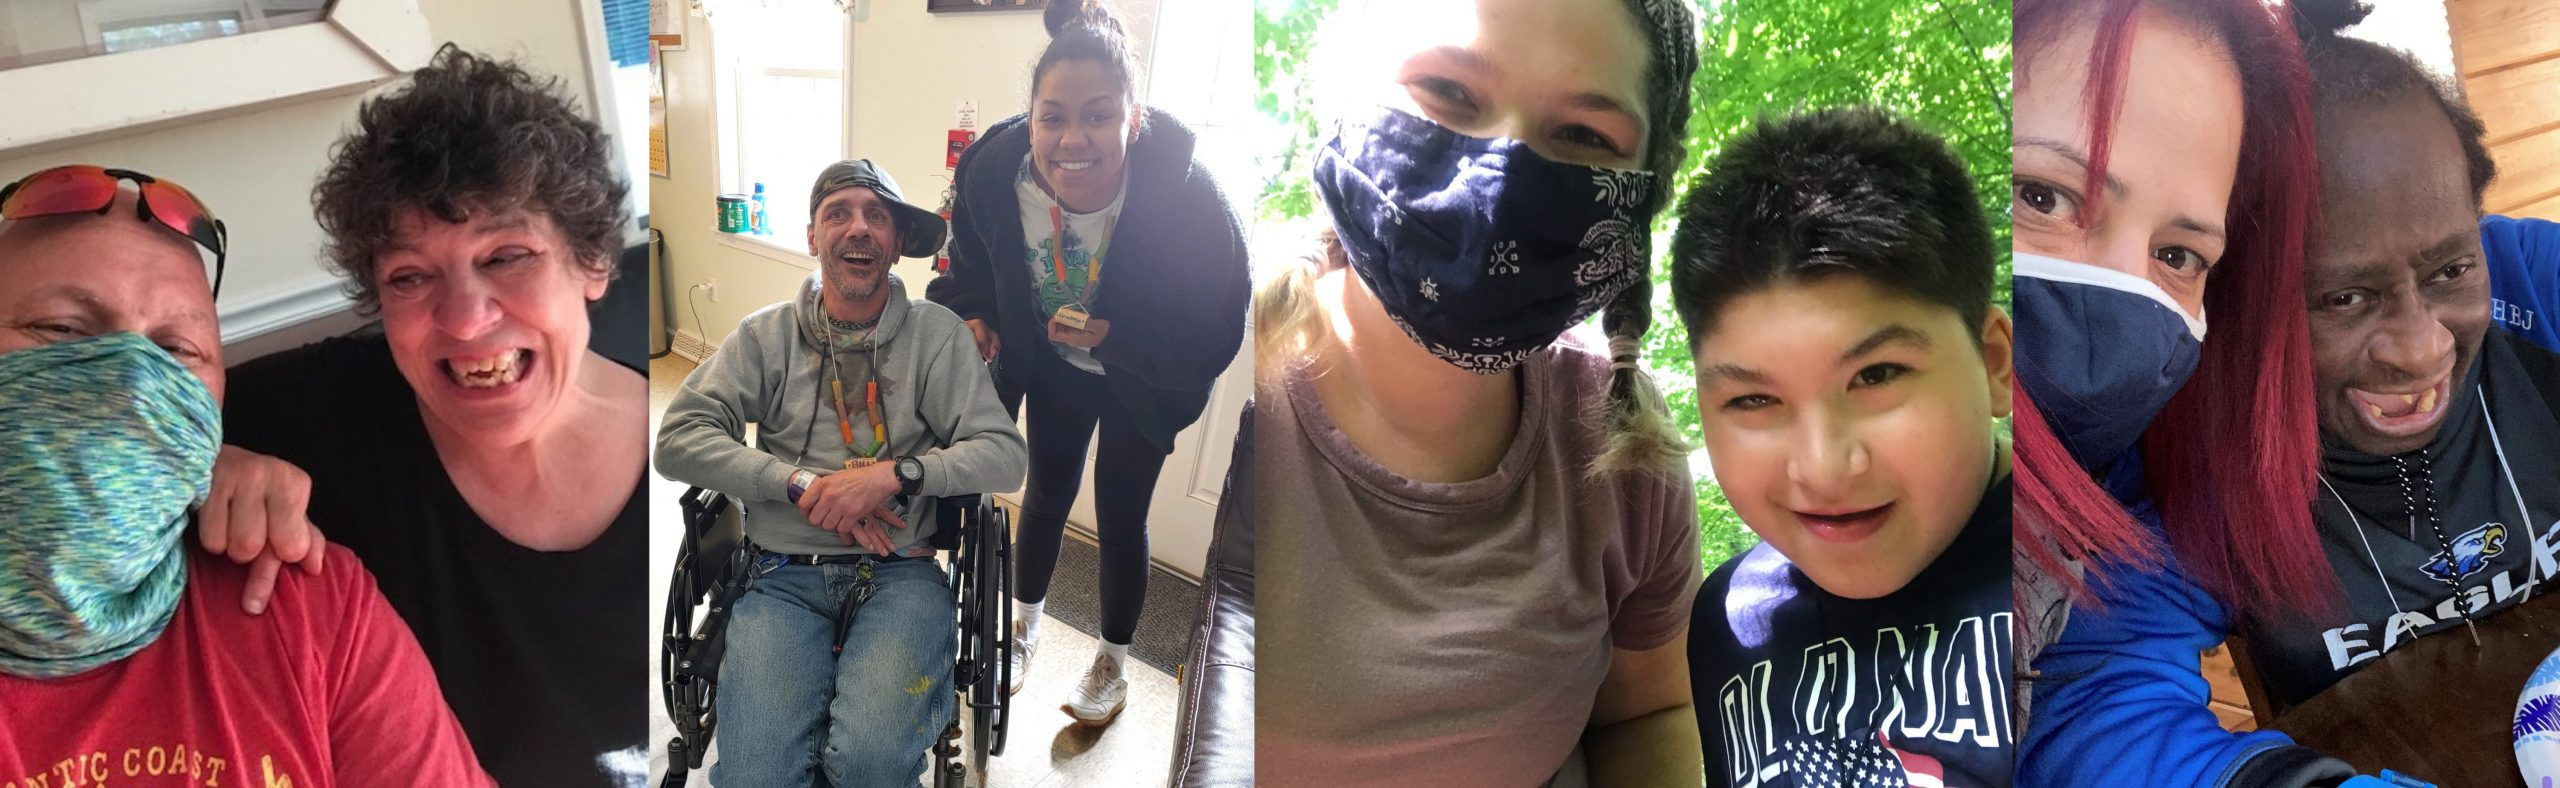 group of images of people with masks and people with disabilities